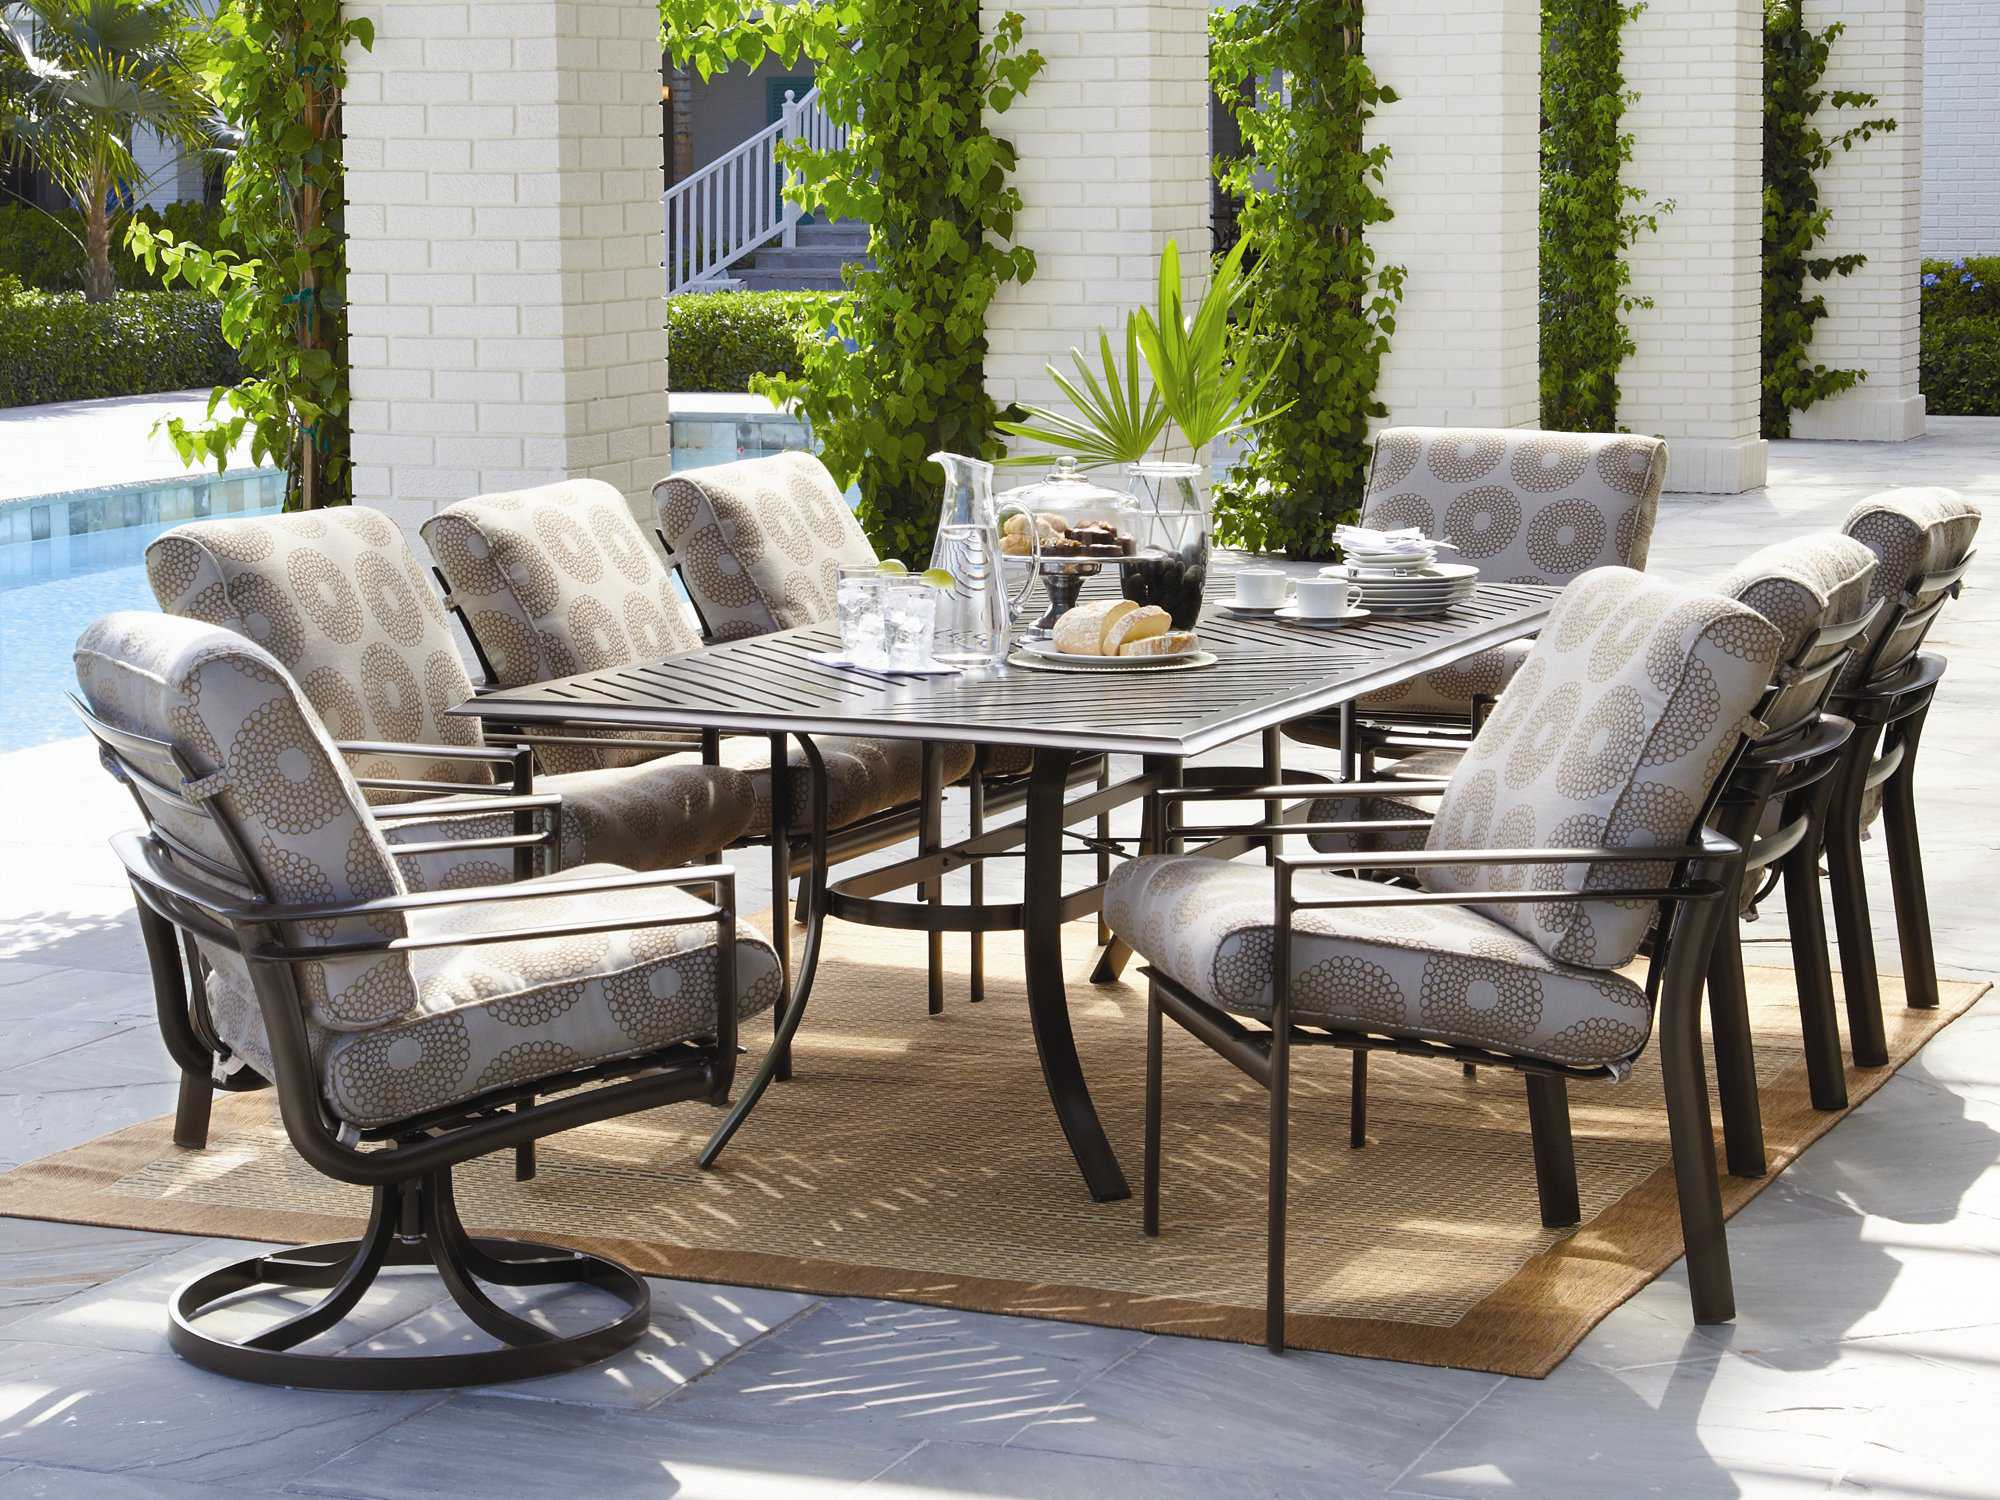 Winston Southern Cay Sling Aluminum Armless Chaise Lounge: Winston Southern Cay Cushion Aluminum Dining Set